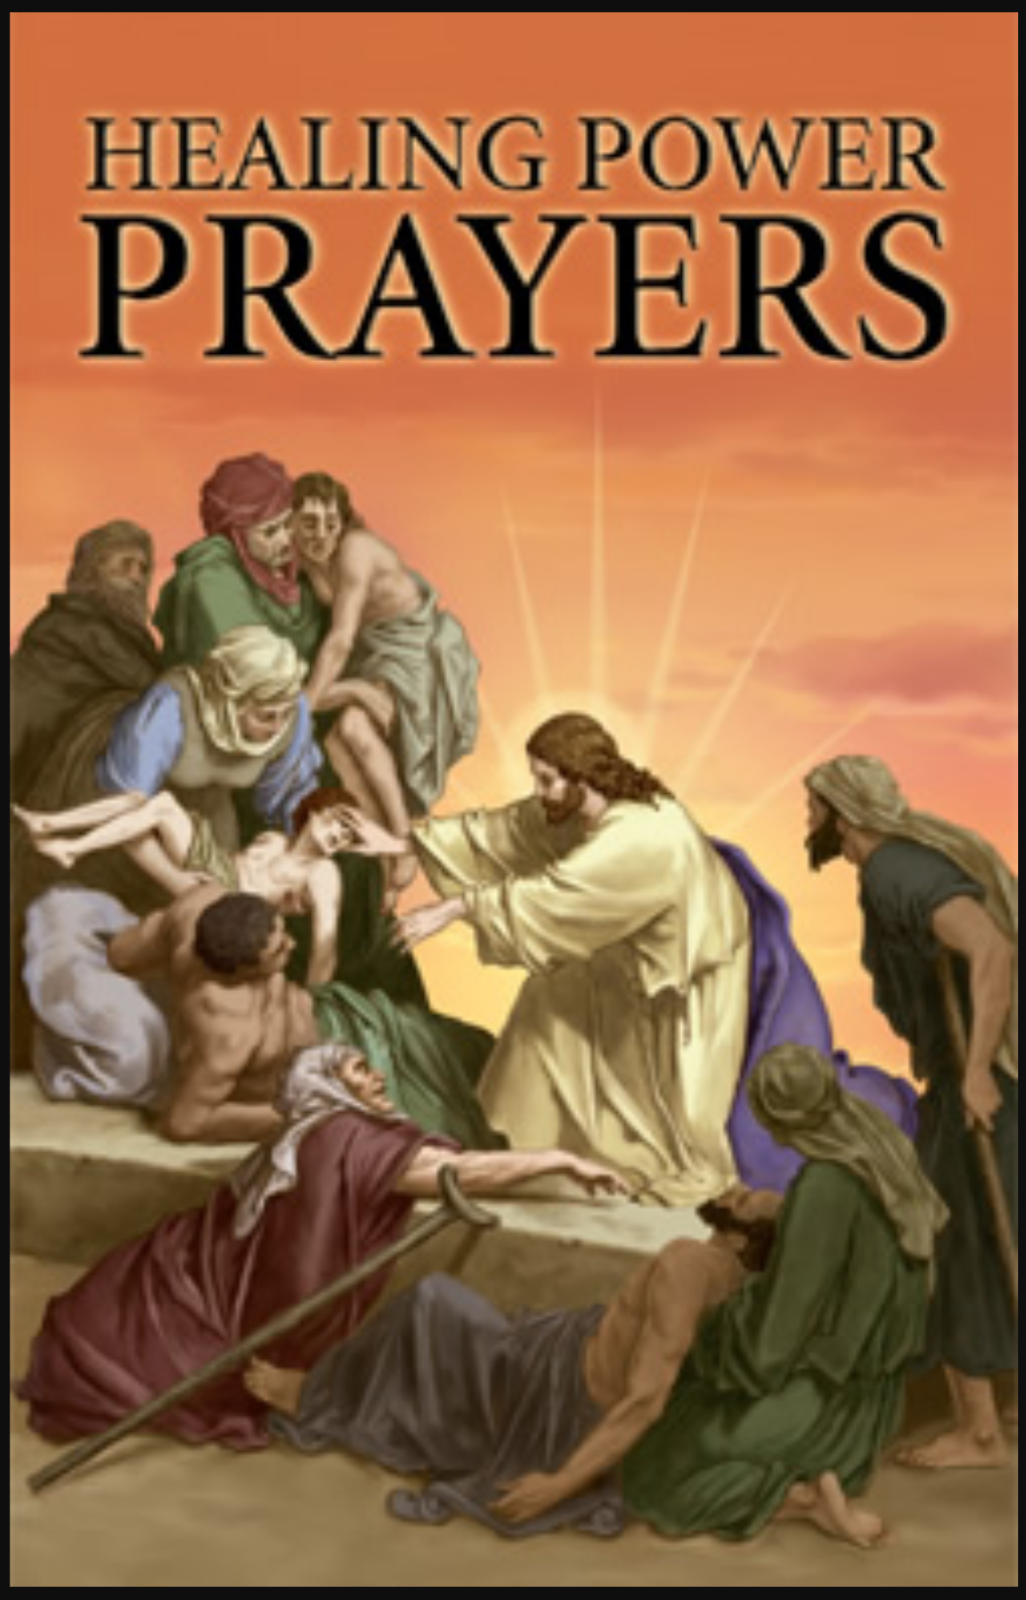 Healing Power Prayers - 32 Page Prayer Booklet - by Robert Abel